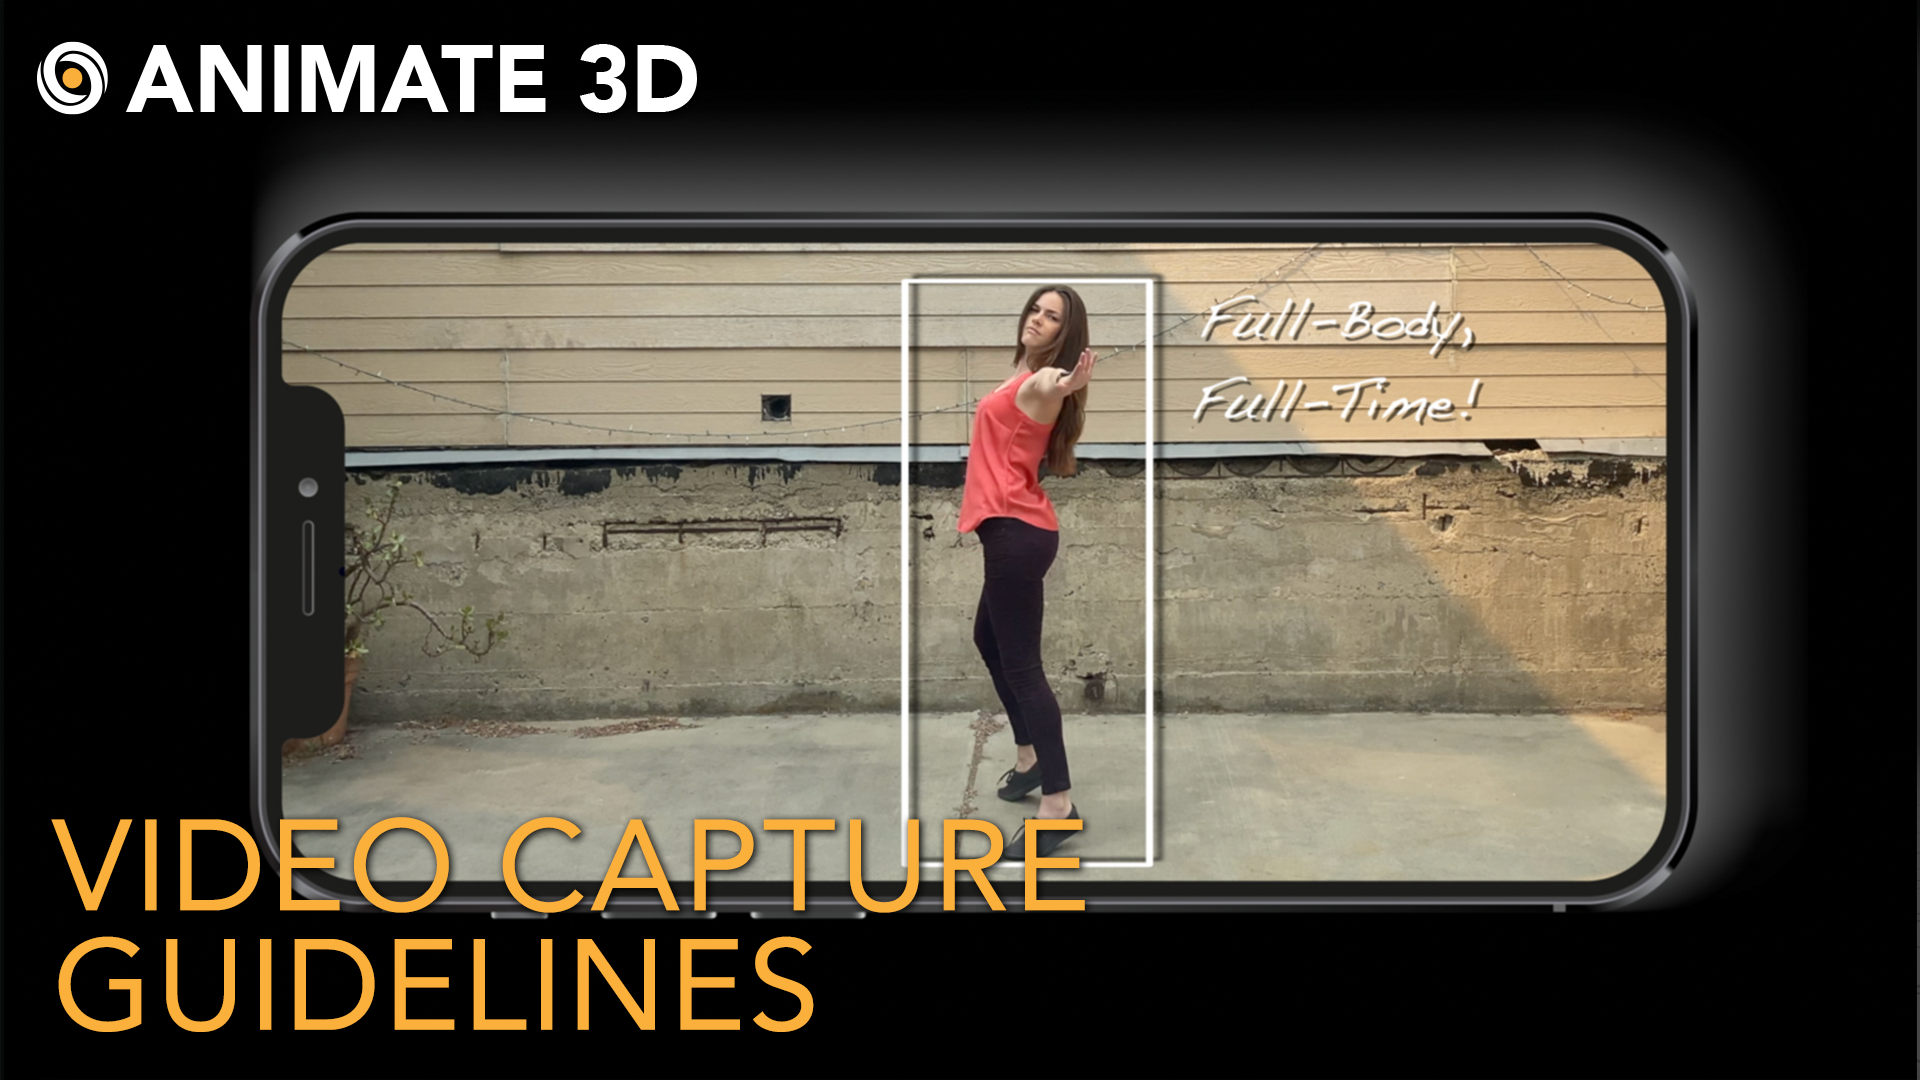 Animate 3D Video Capture Guidelines - Make Your Best Animation!